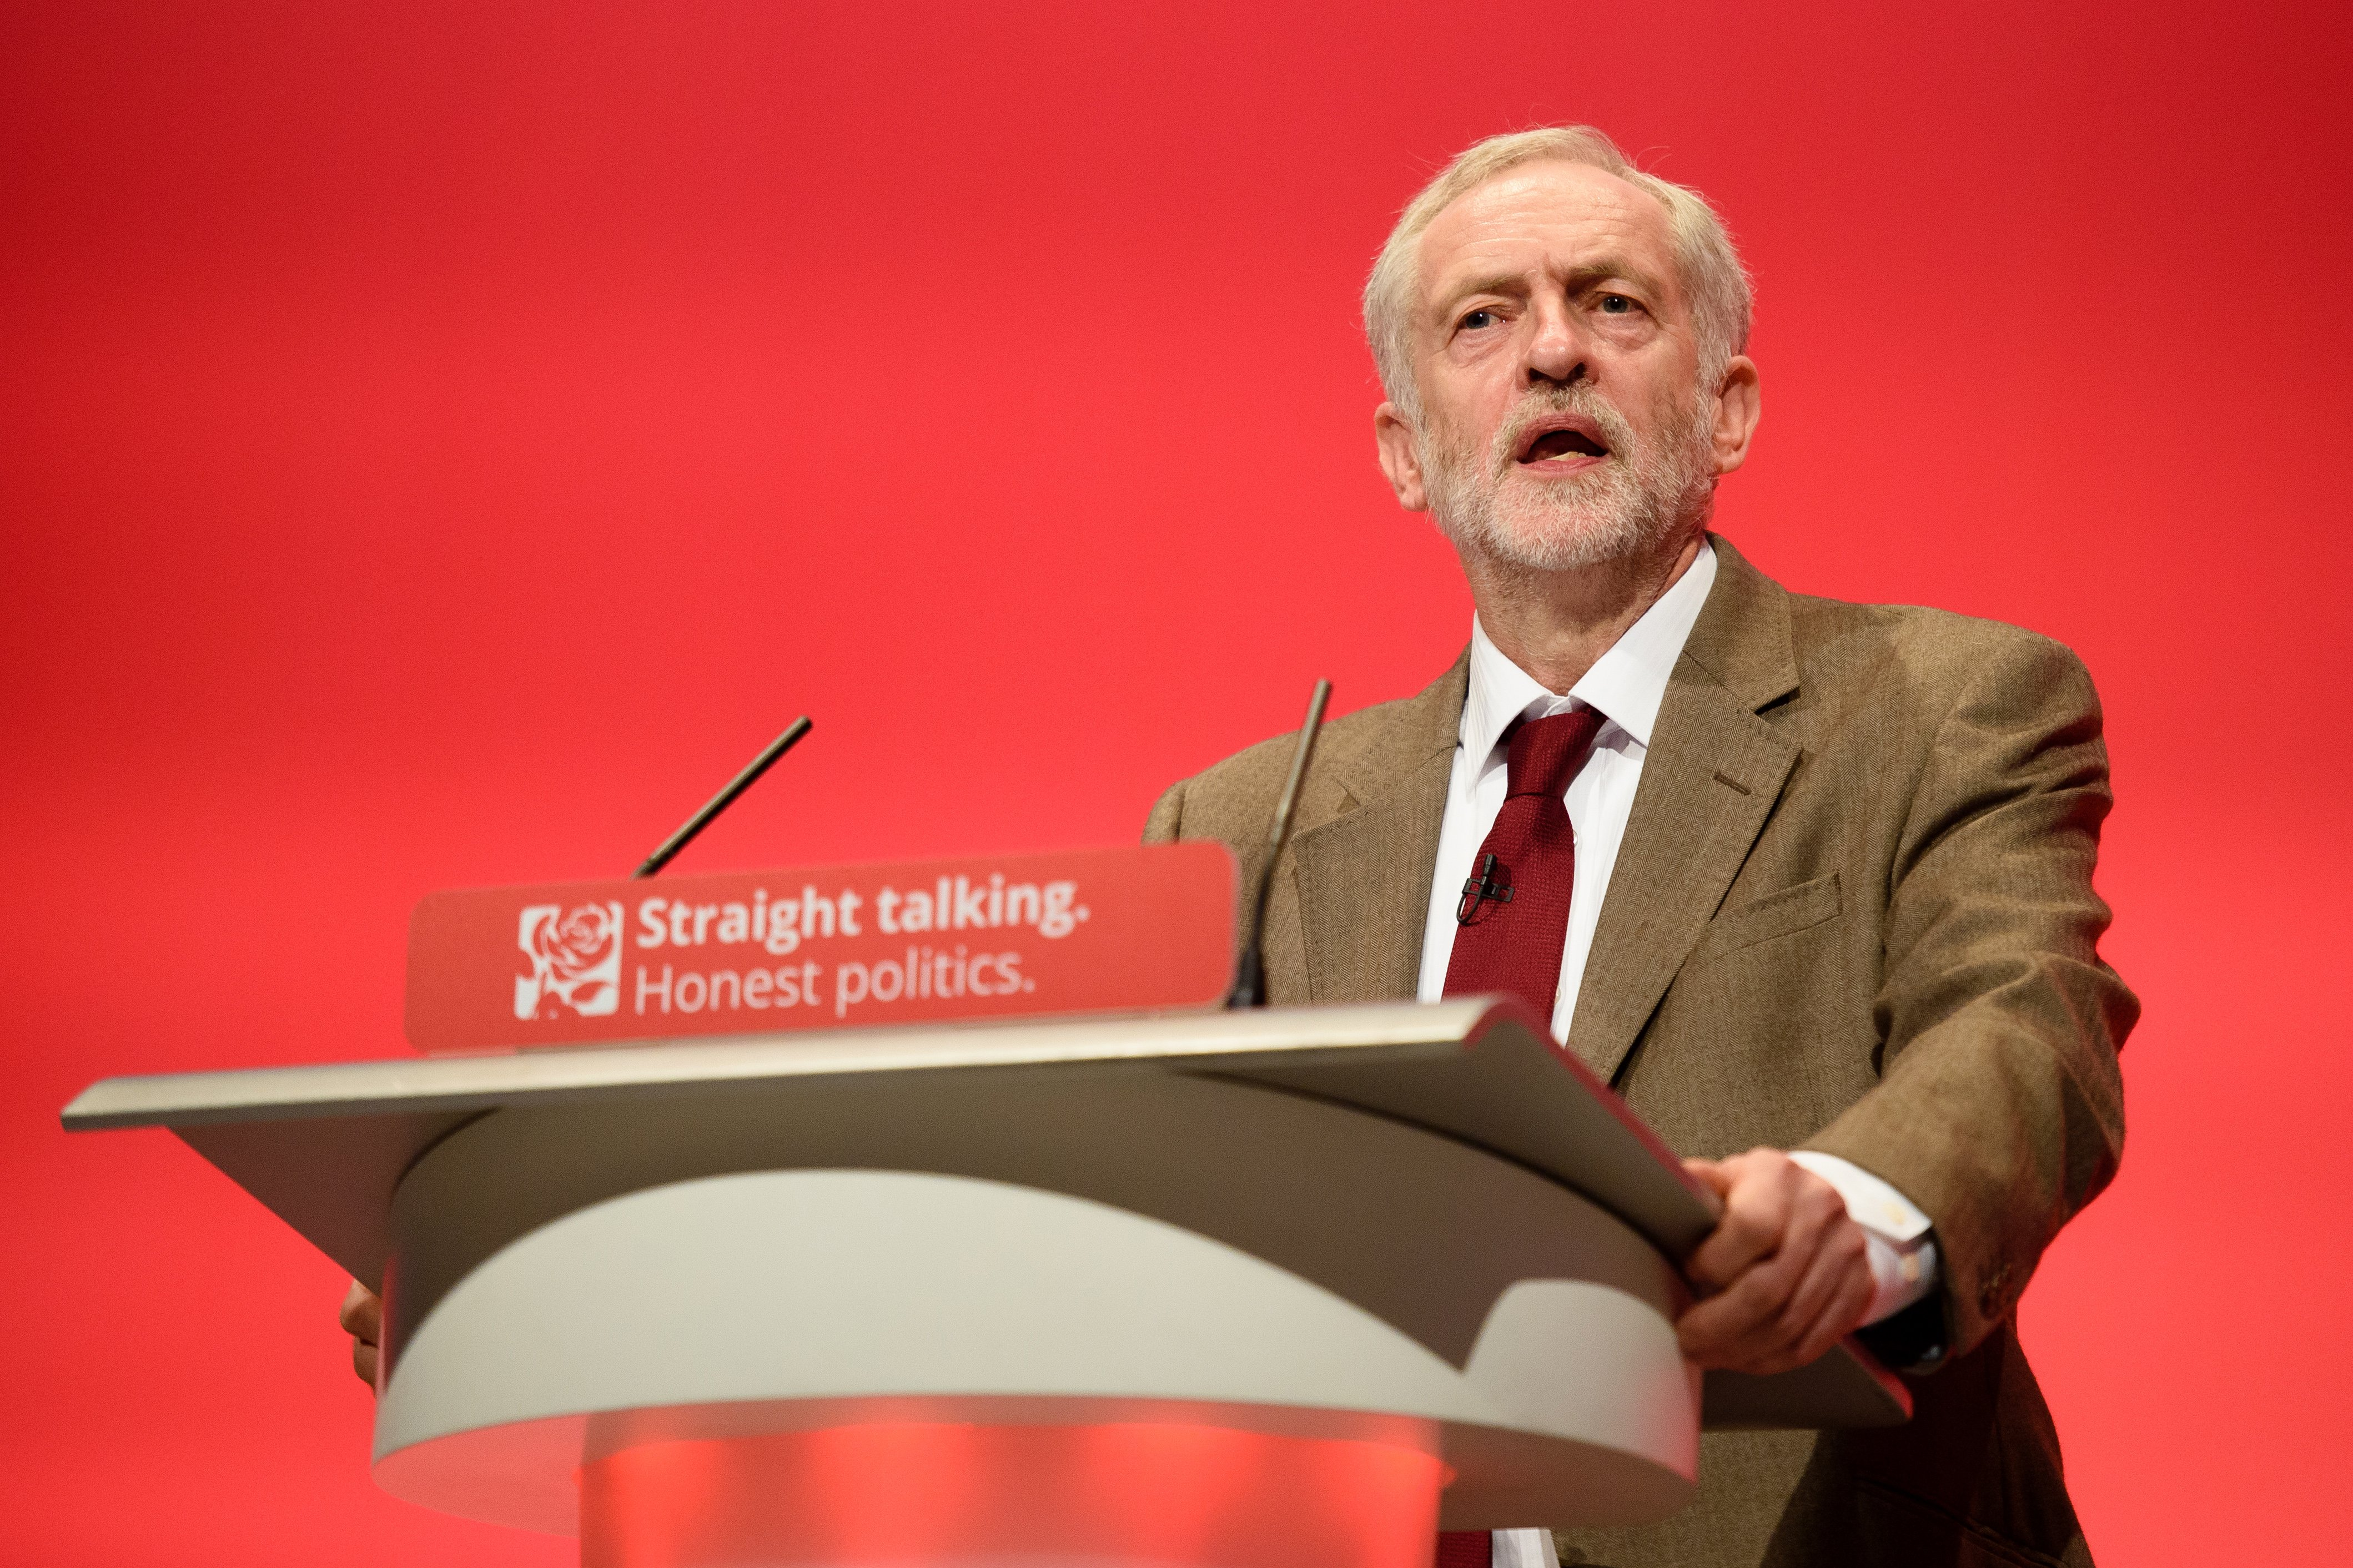 Jeremy Corbyn gives his first leader's speech at the Labour Party conference in 2015 (AFP)